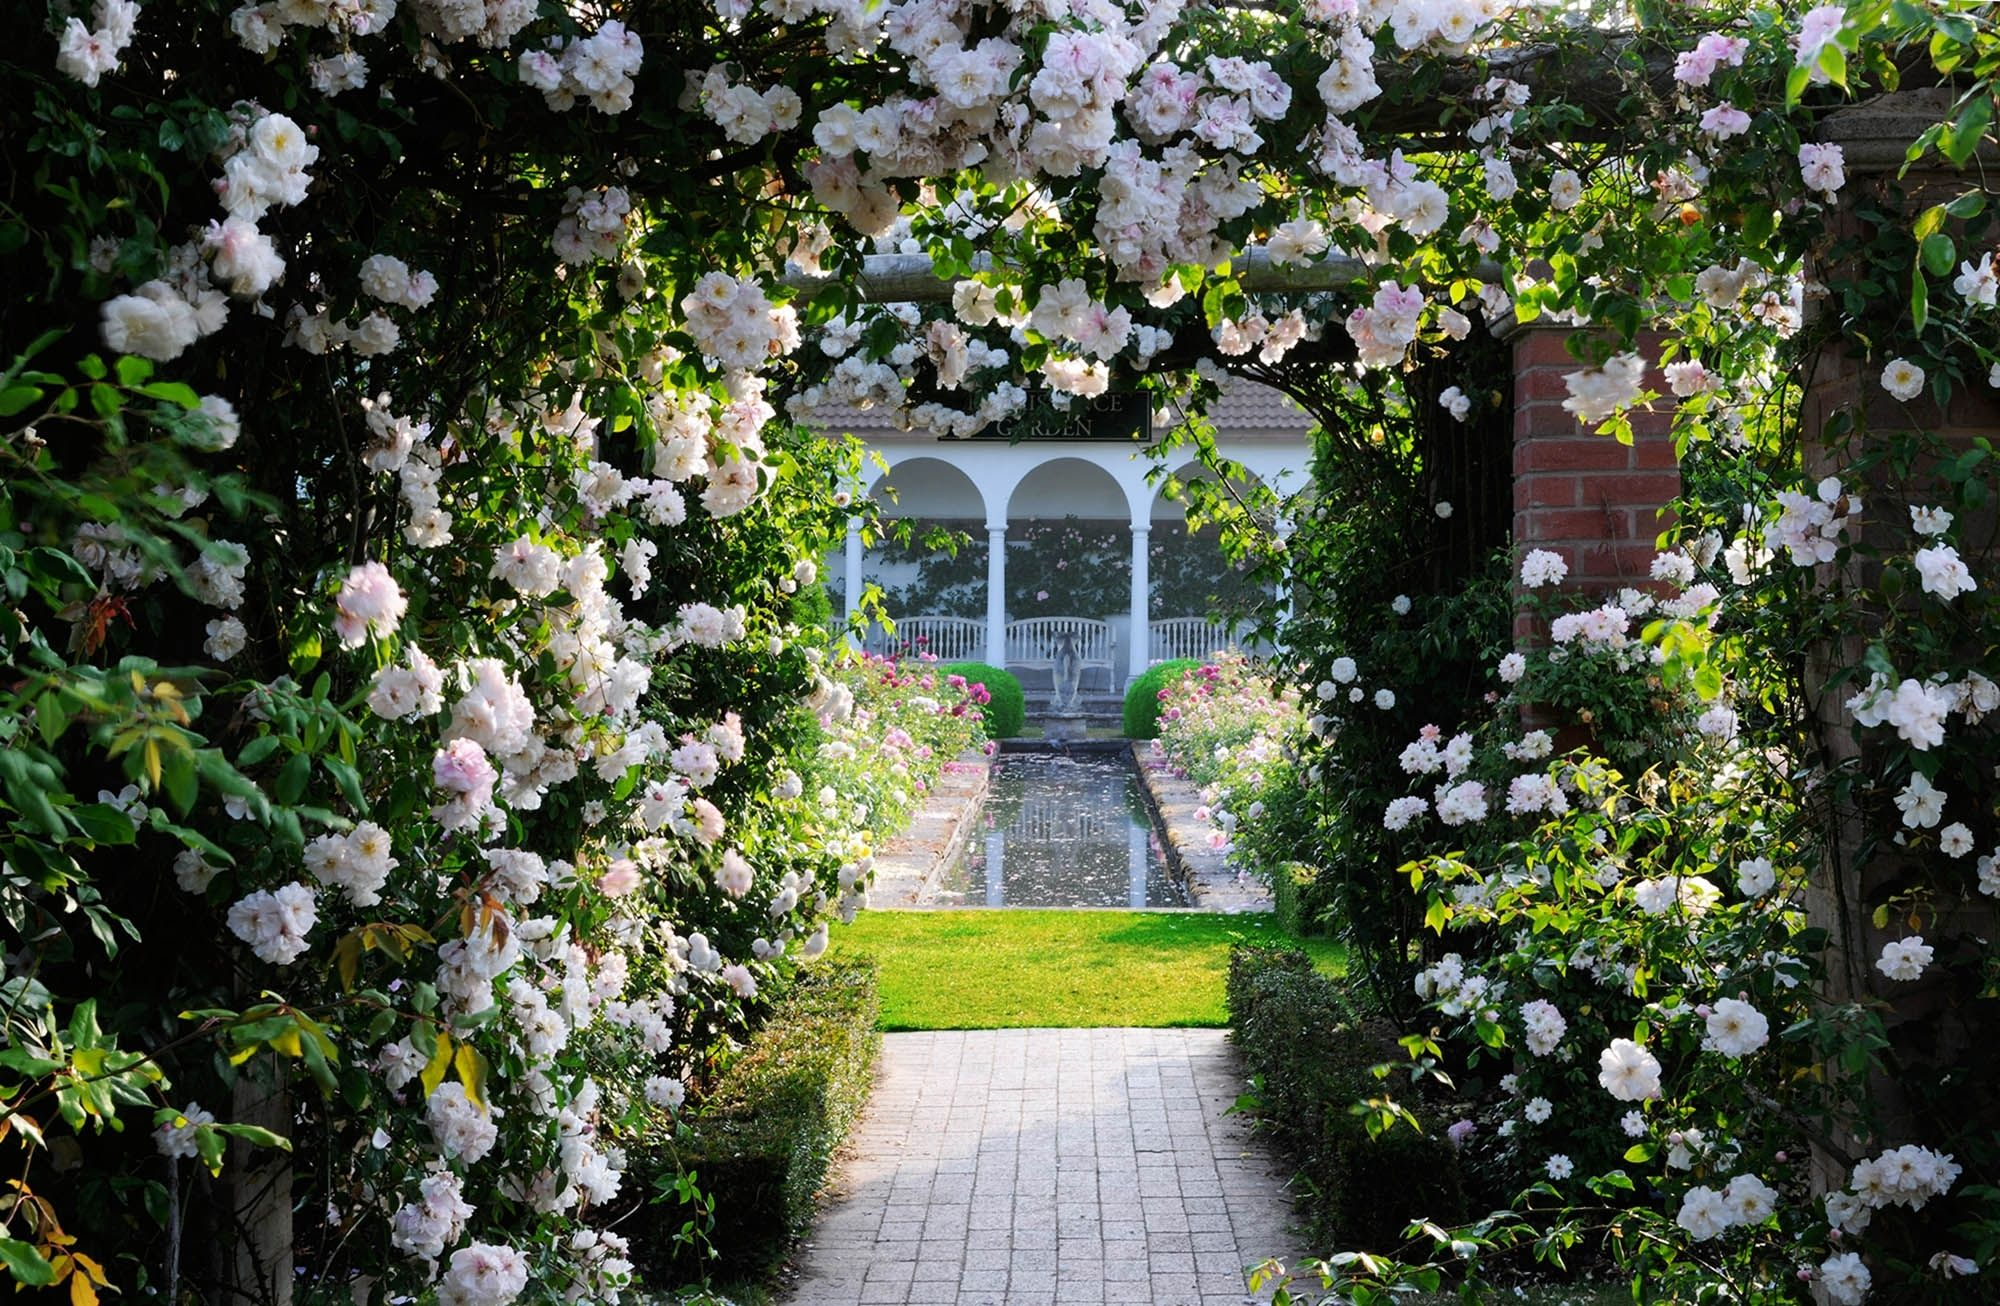 most beautiful home gardens in the world david austin rose gardens - Most Beautiful Rose Gardens In The World